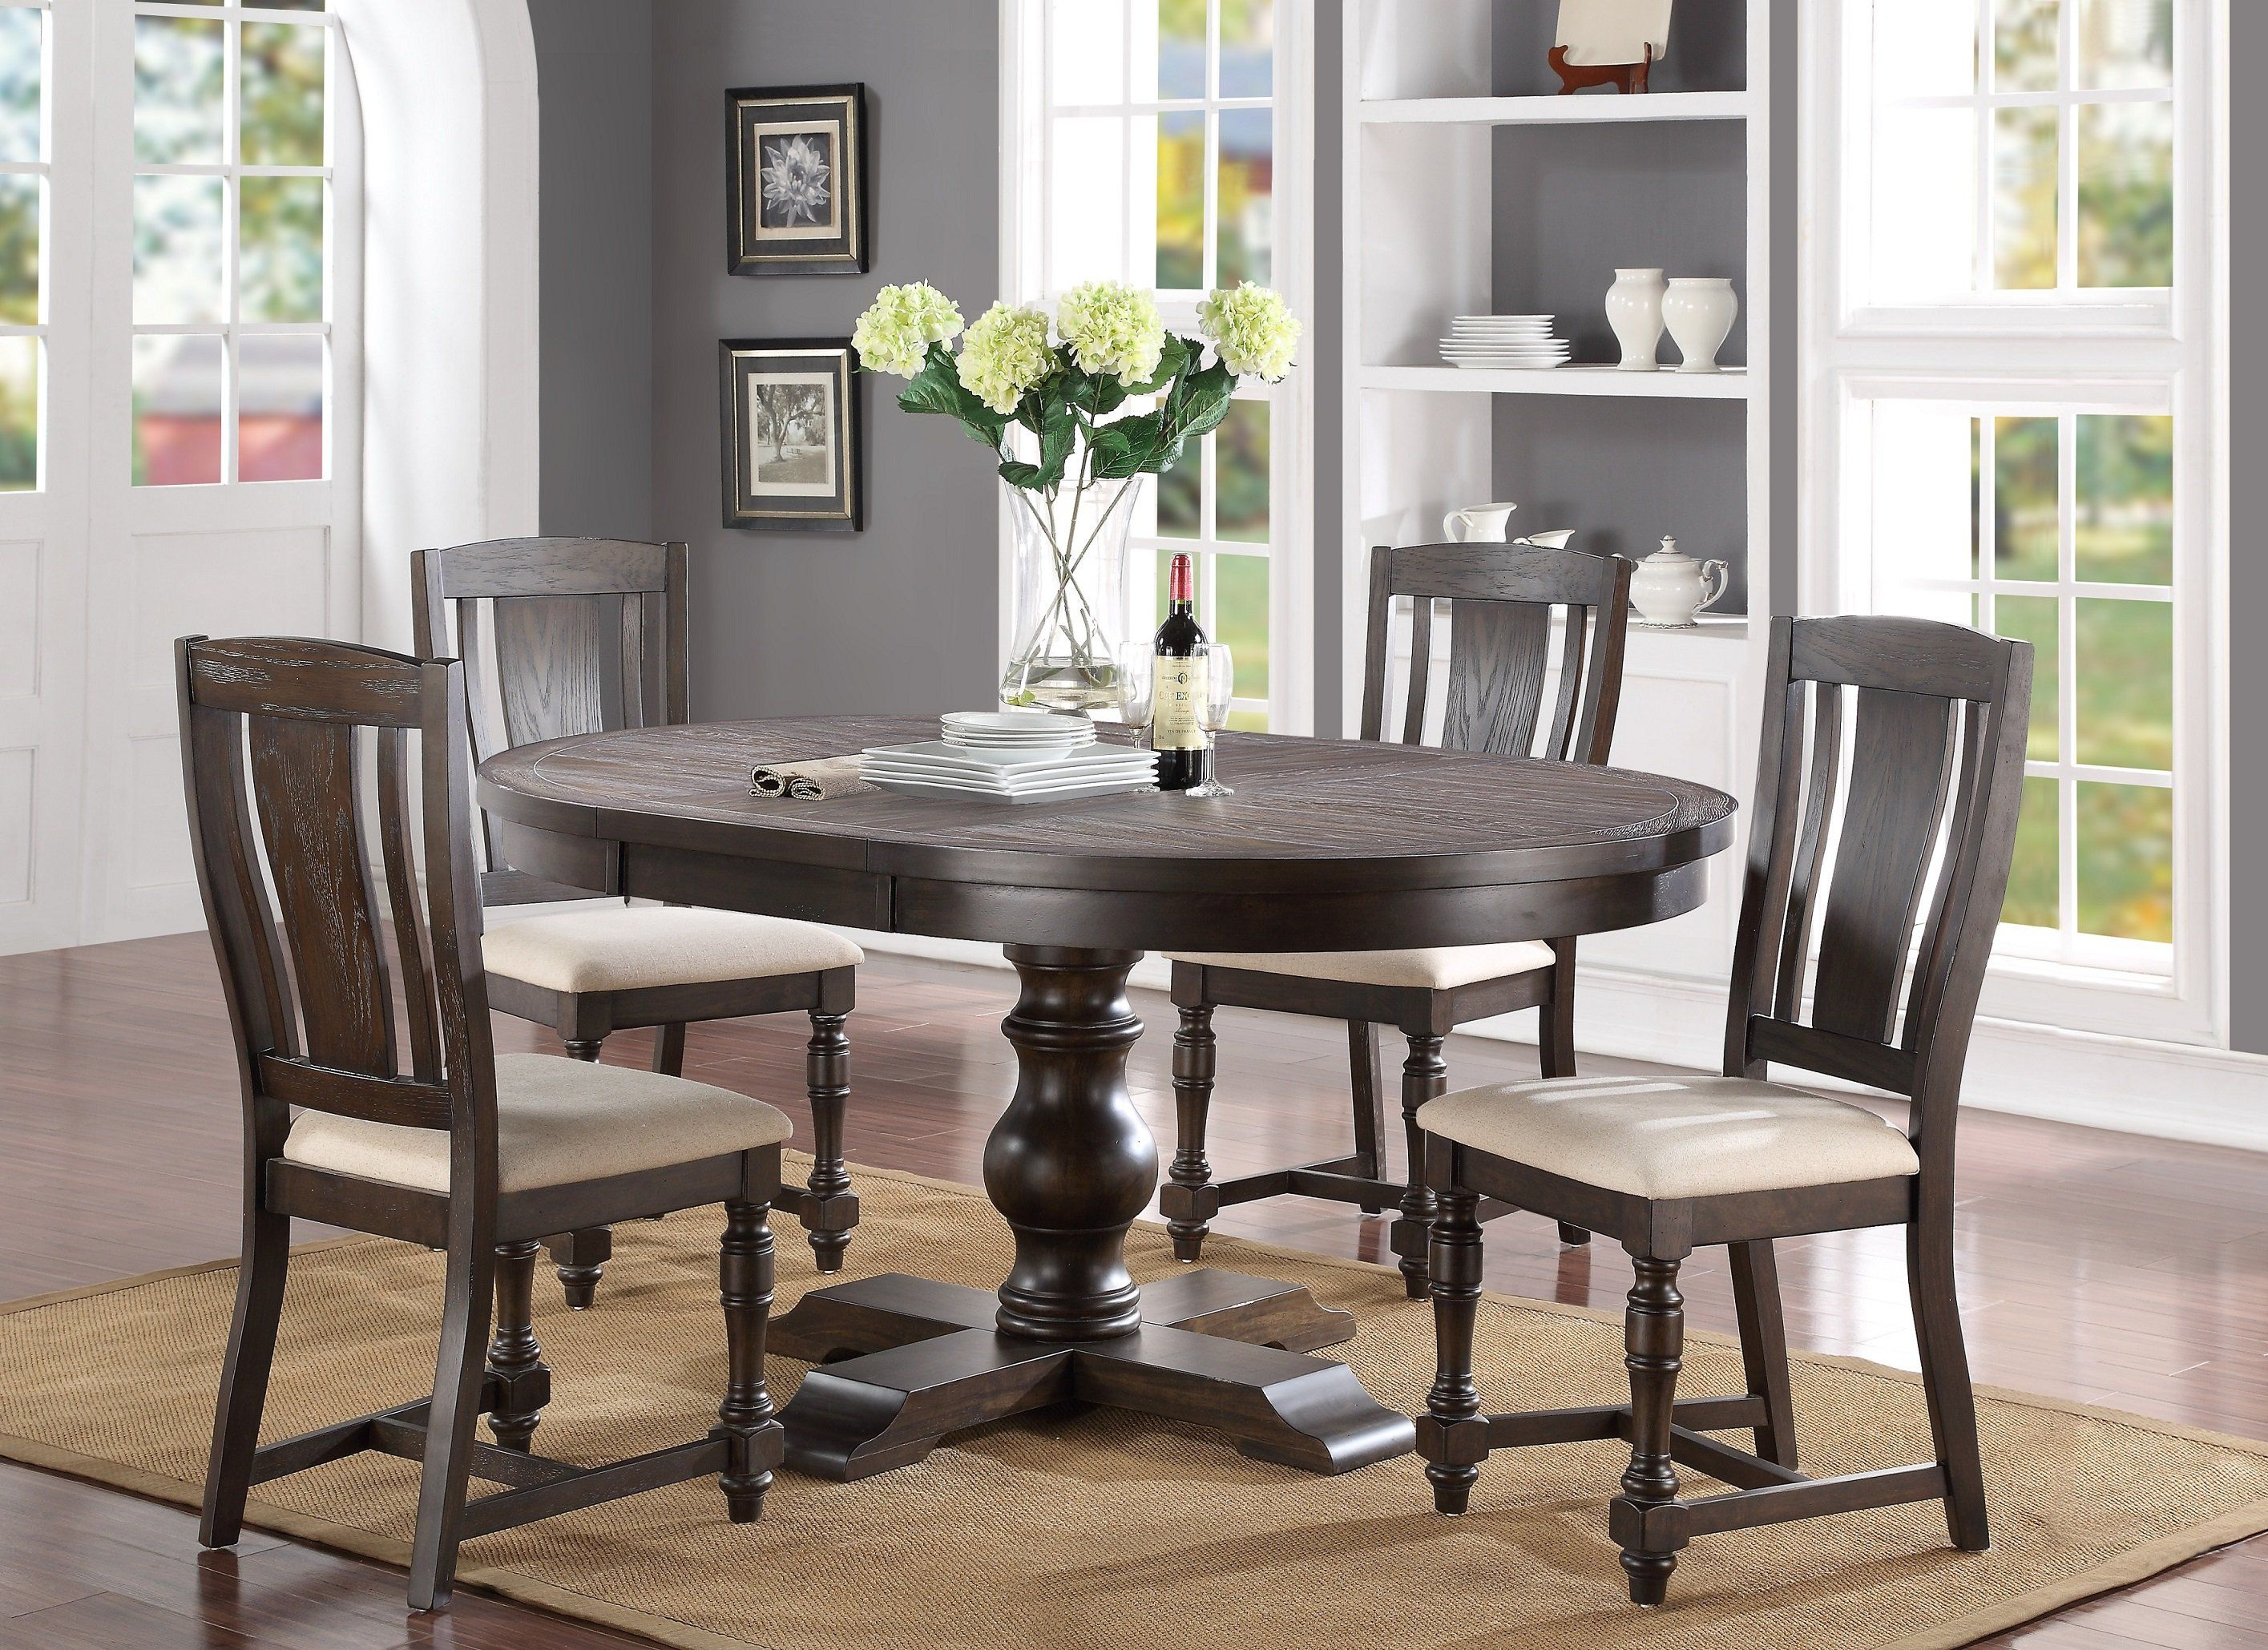 Espresso Brown Round Dining Table - Xcalibur  Dining table